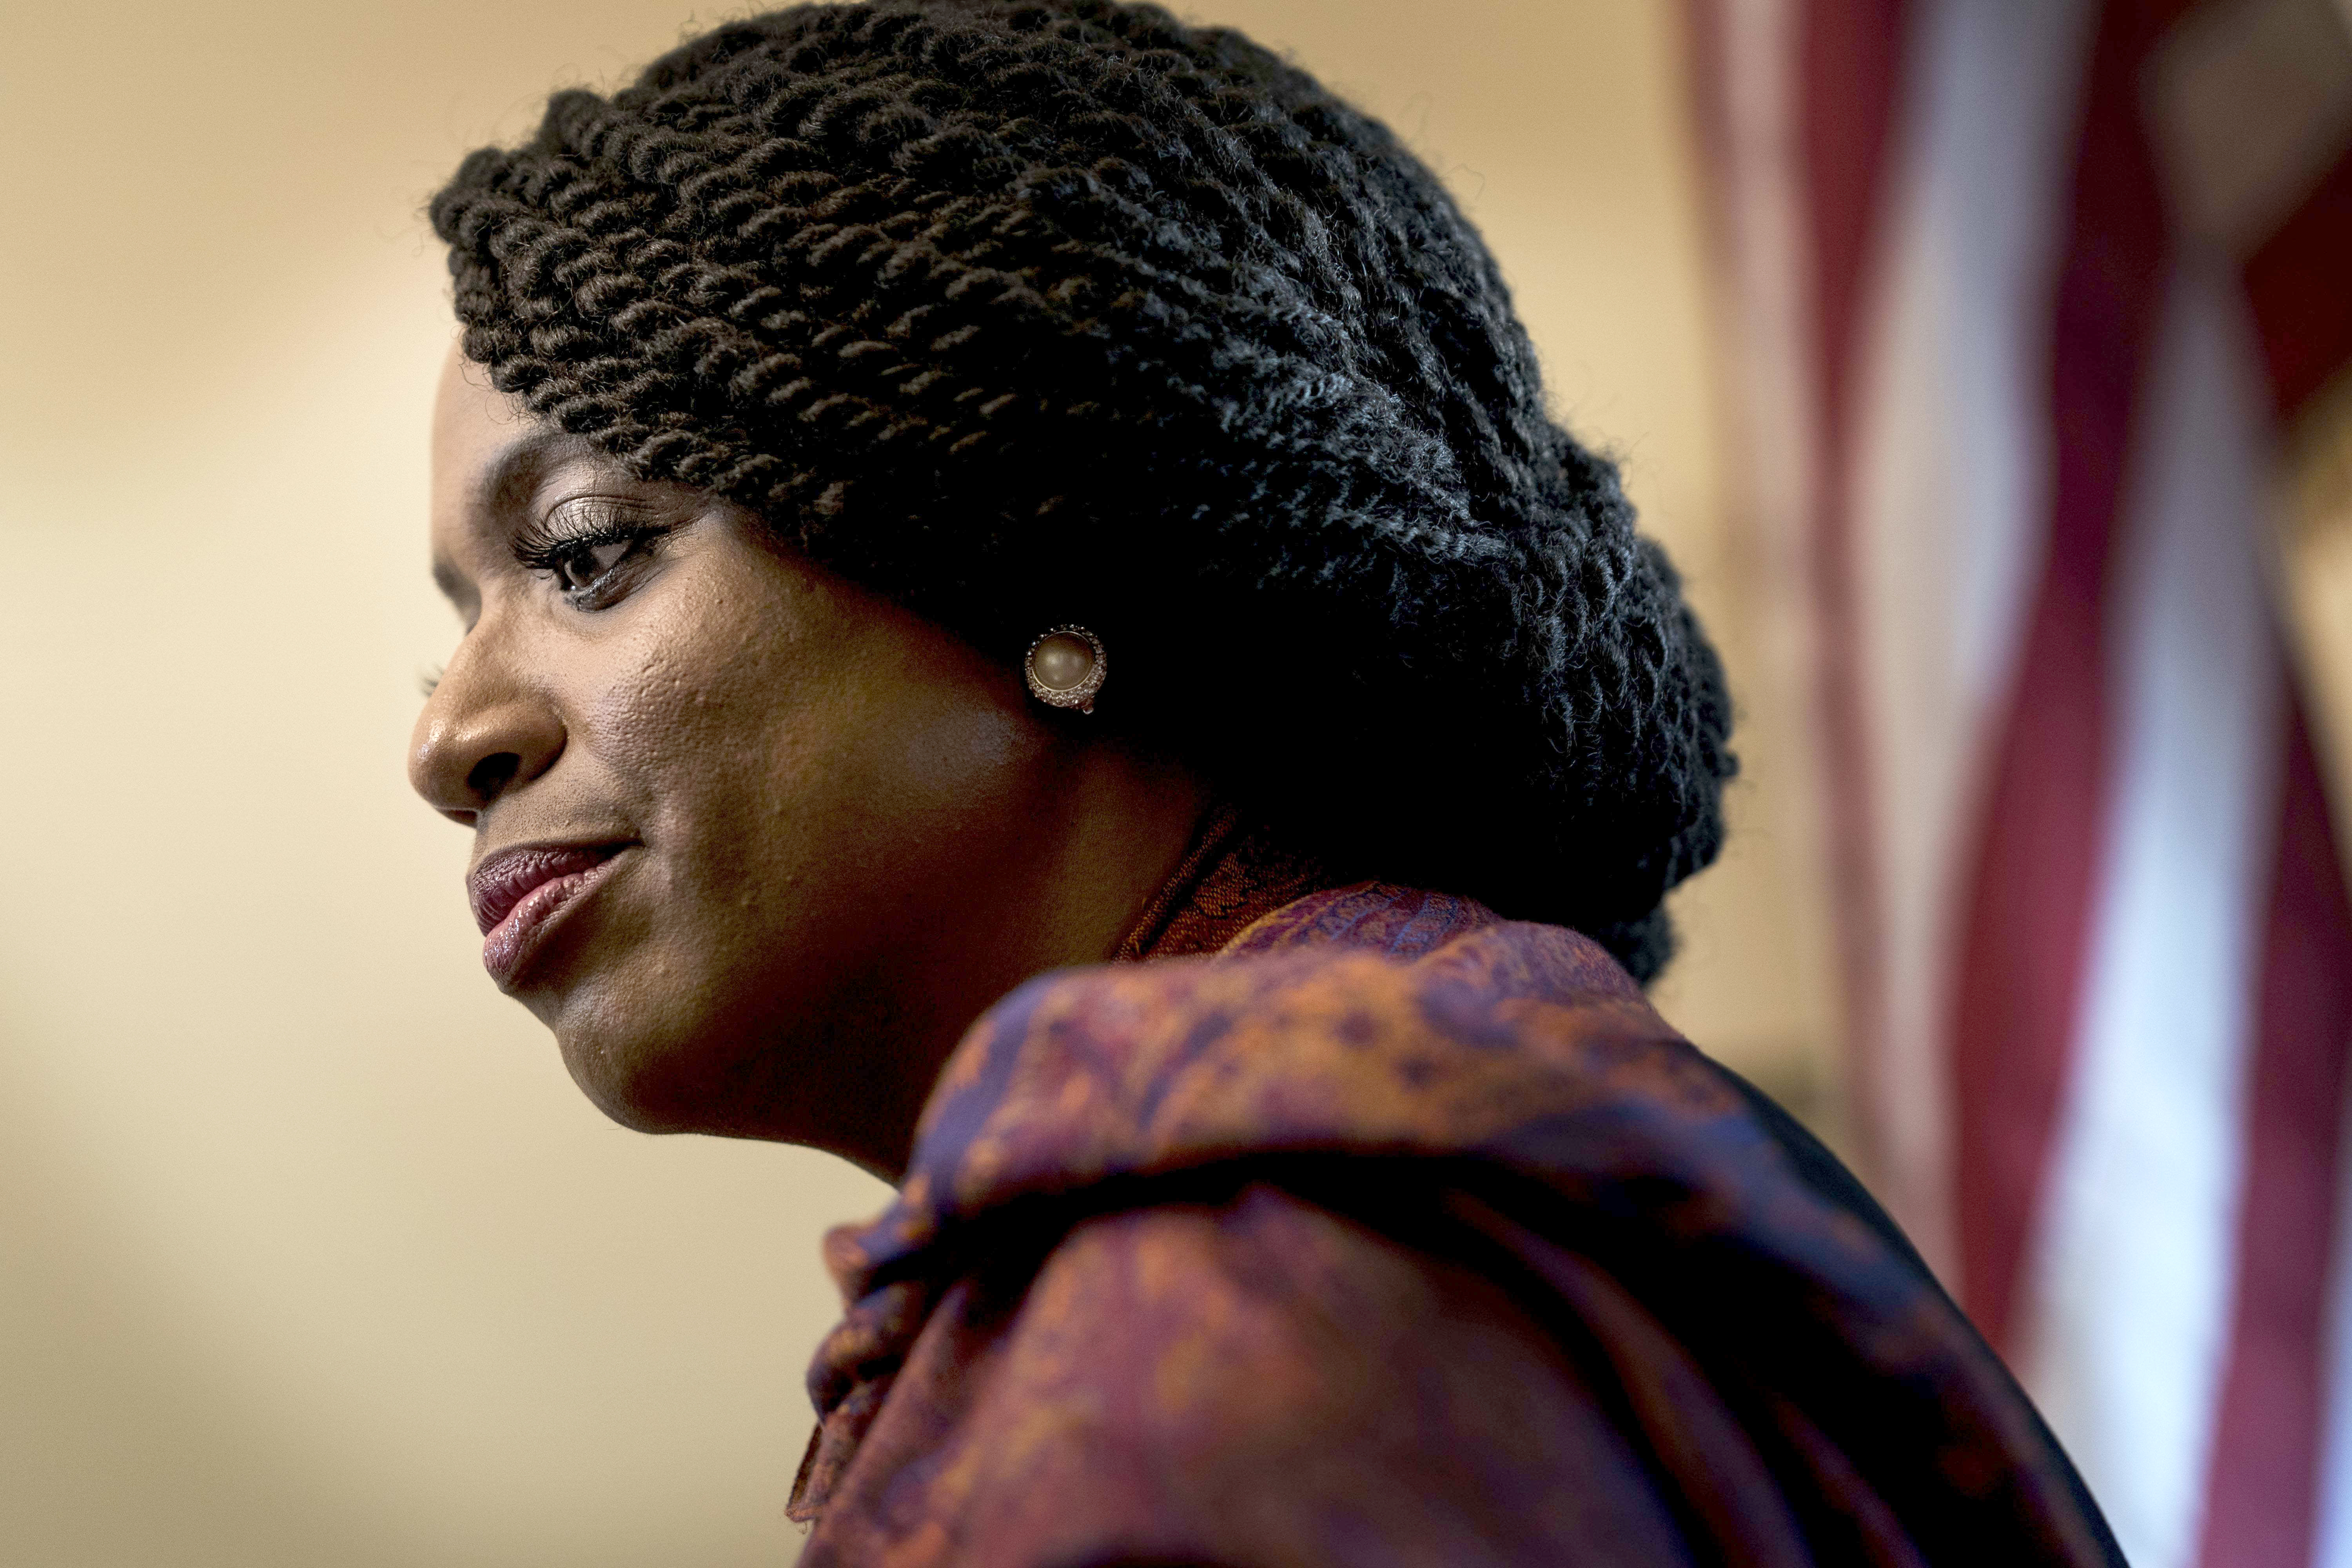 Freshman congresswoman Ayanna Pressley in her Capitol Hill office. MUST CREDIT: Washington Post photo by Melina Mara